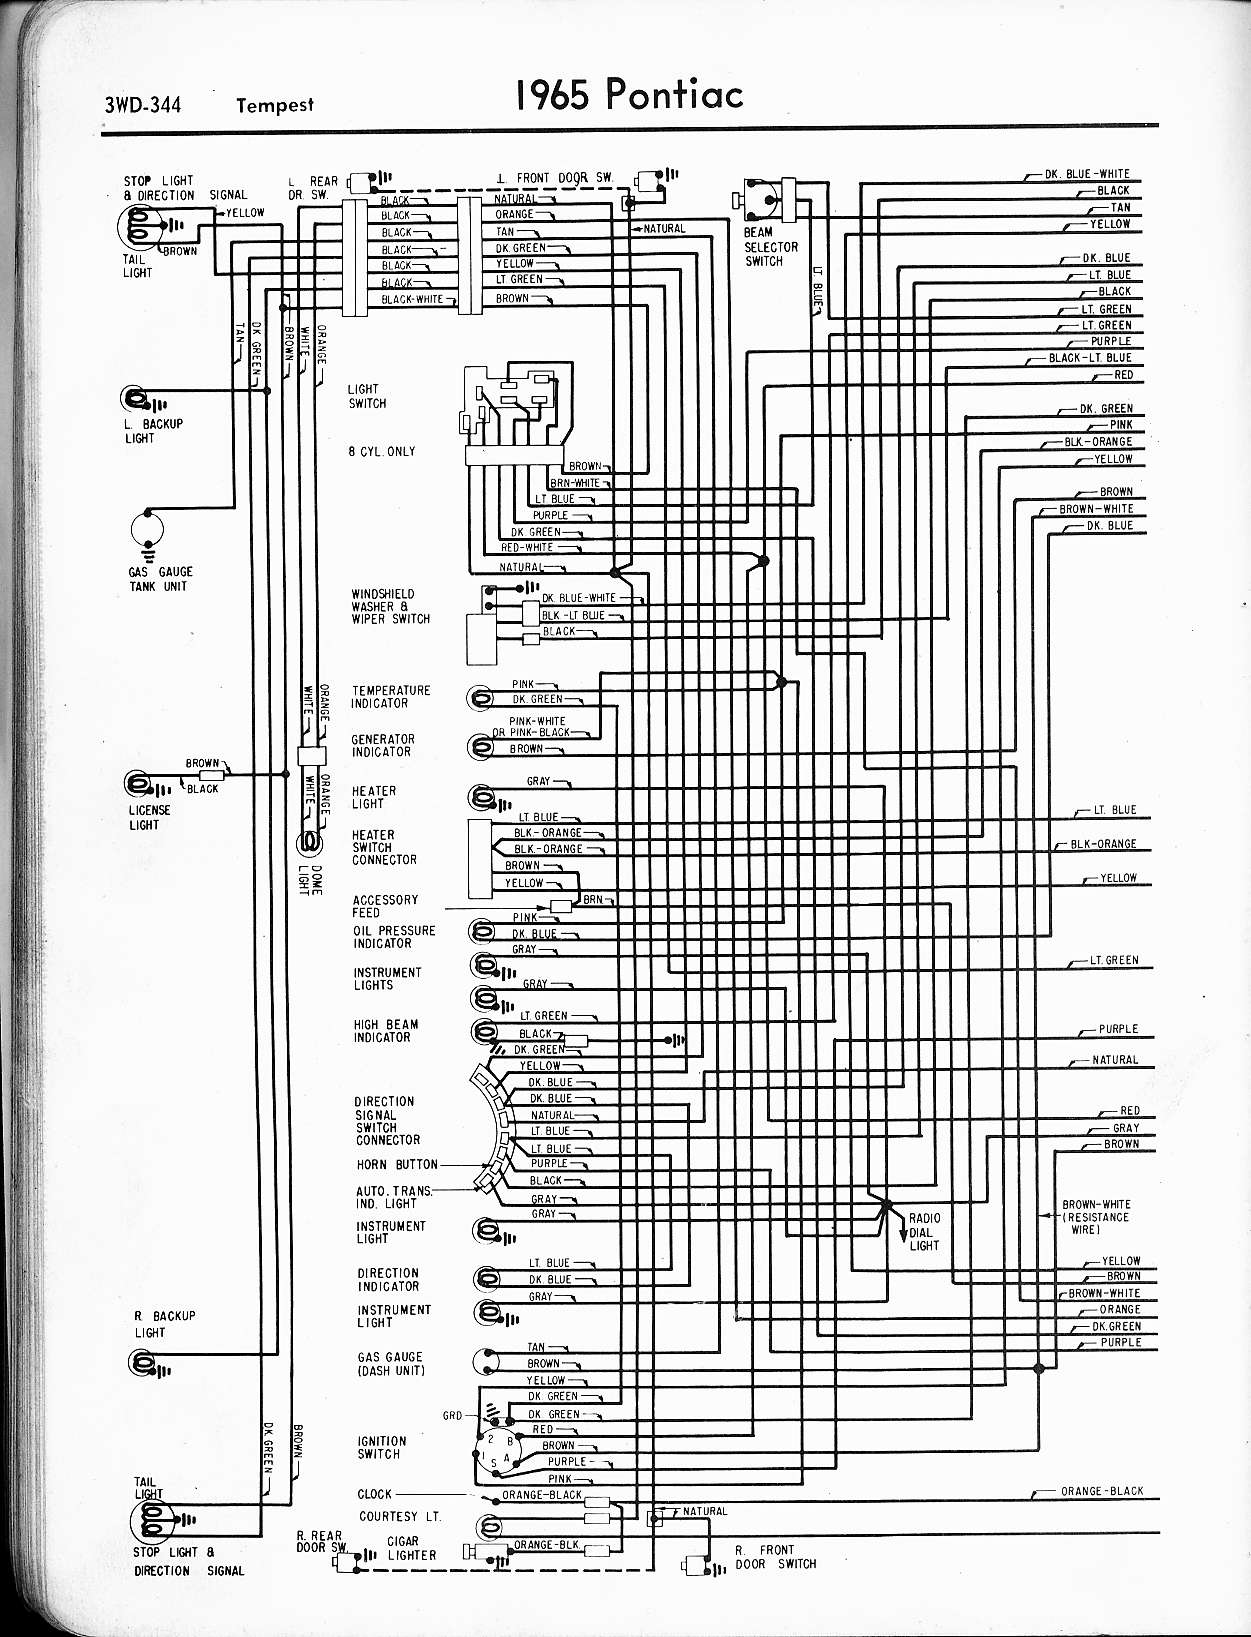 1974 pontiac firebird wiring diagram wire center u2022 rh inkshirts co Pontiac Firebird Wiring Diagram for 87 97 Pontiac Firebird Brake Wiring